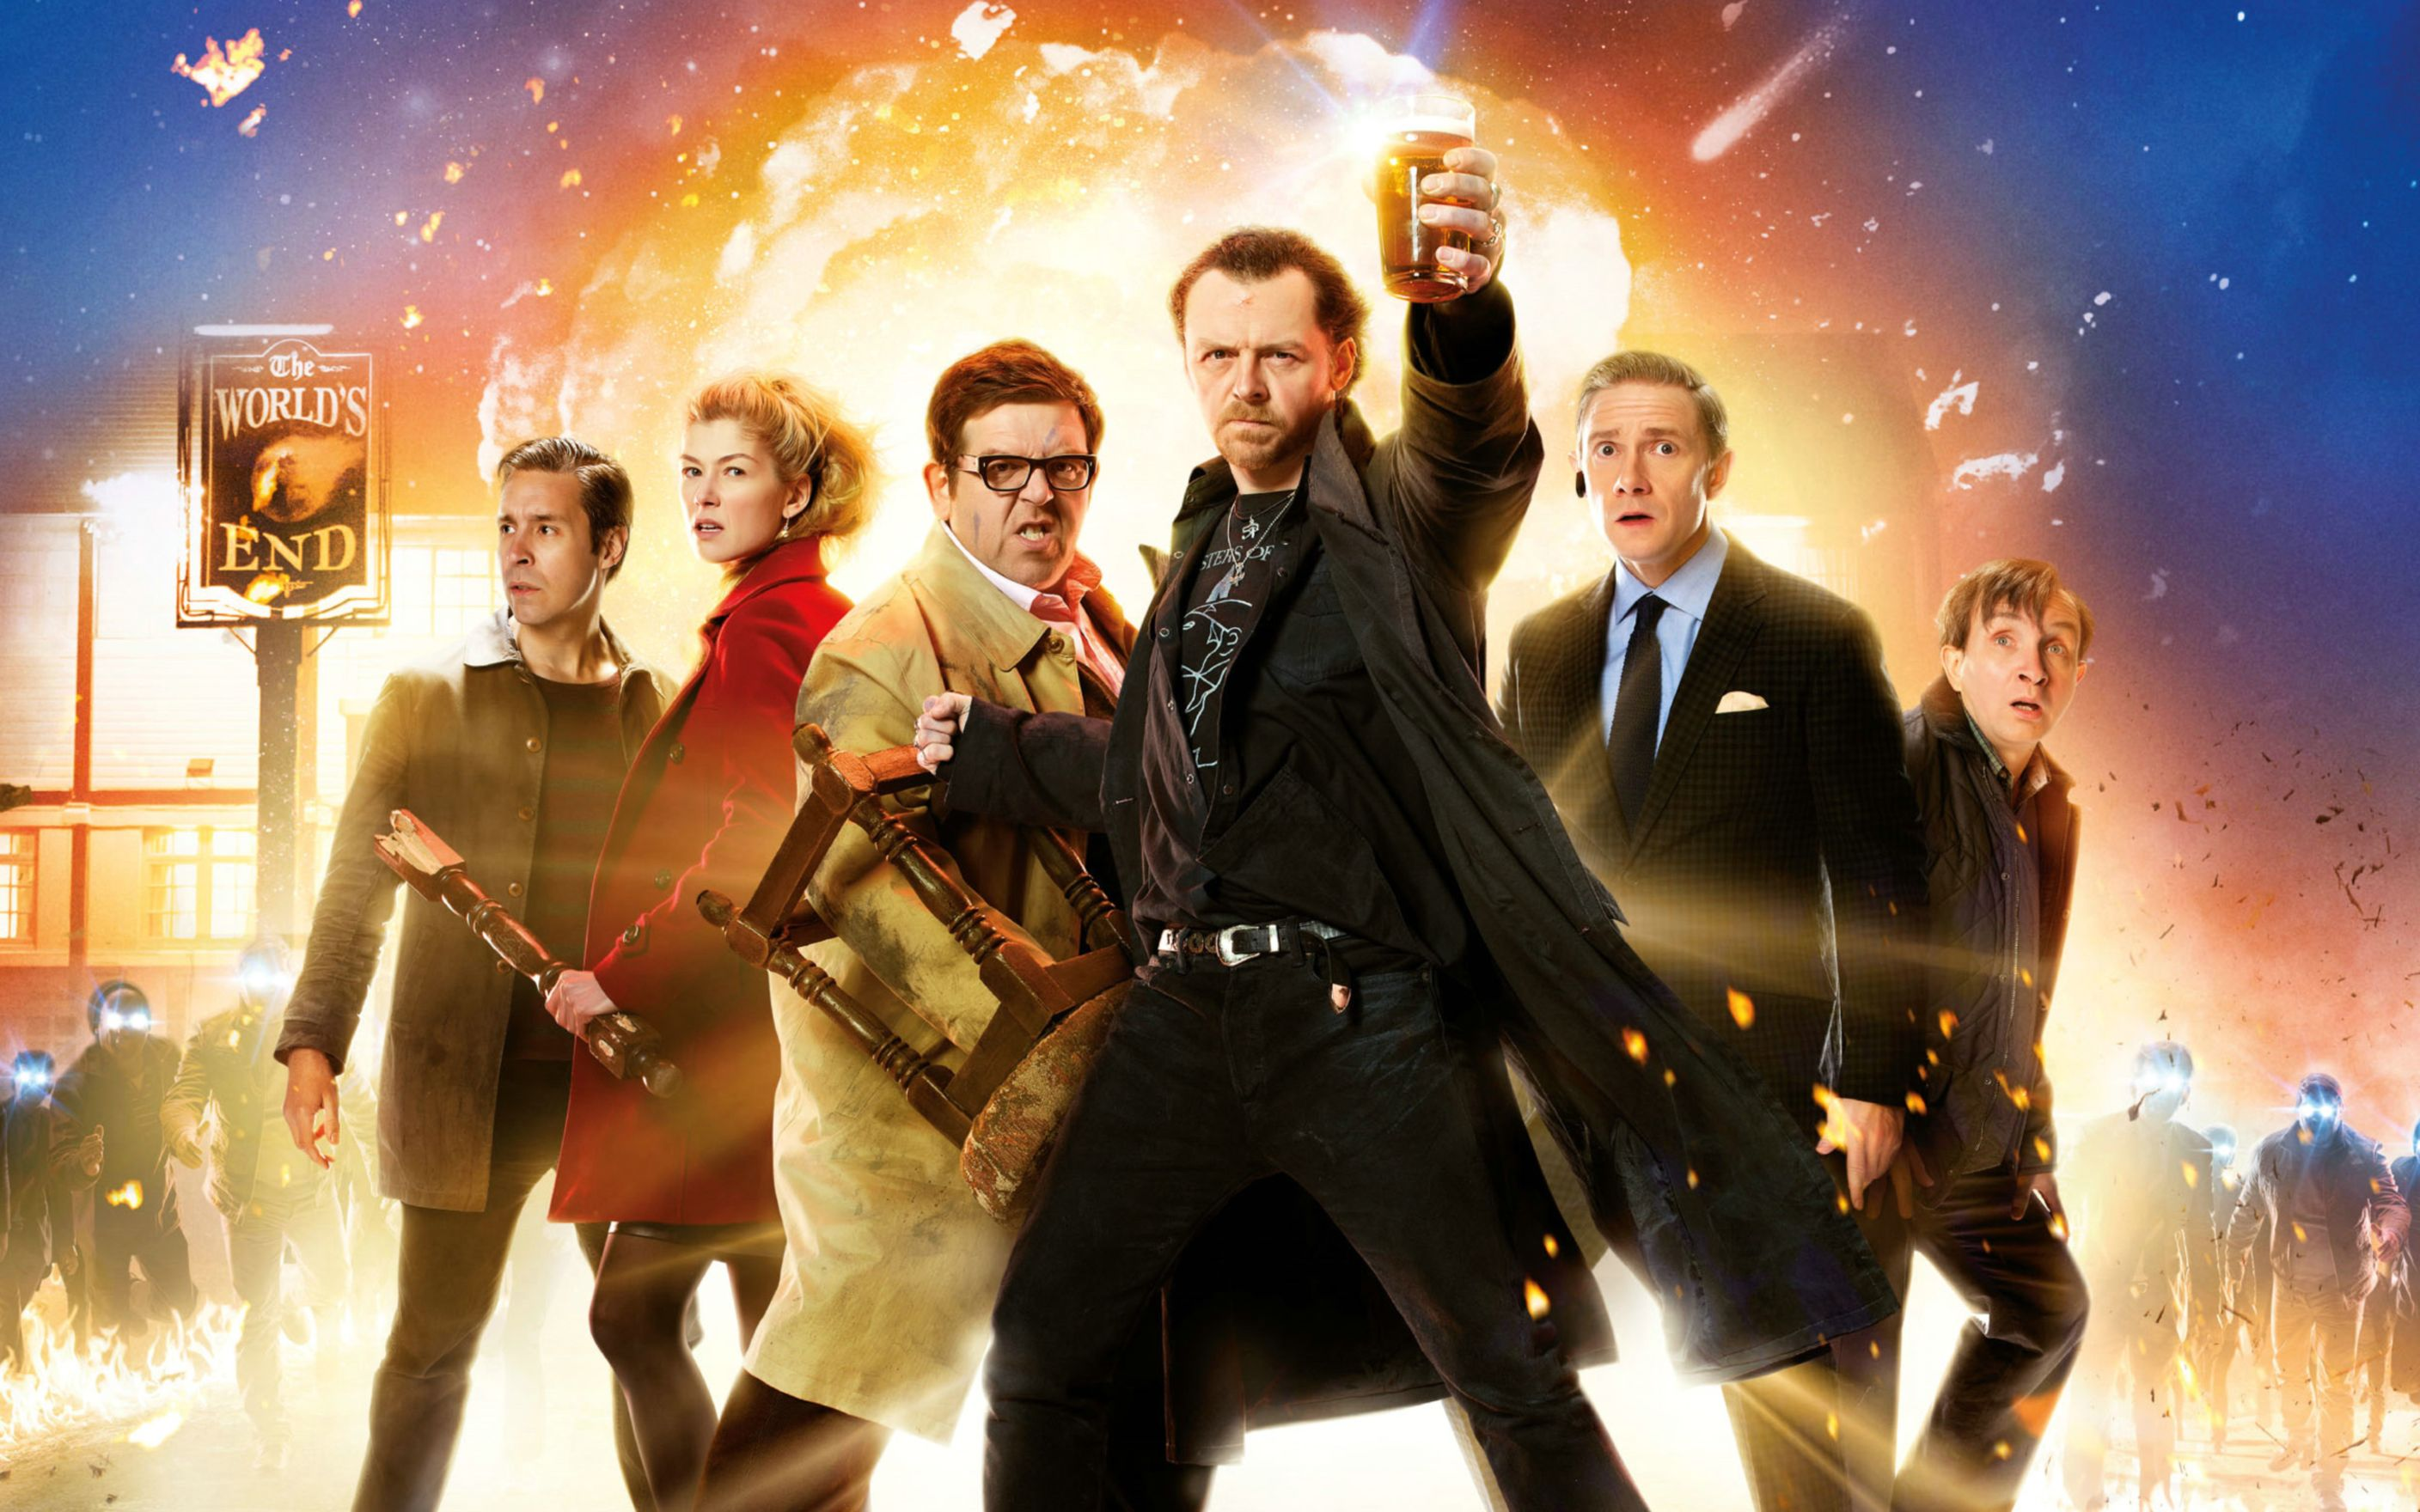 Download free HD The Worlds End Movie Wide Wallpaper, image